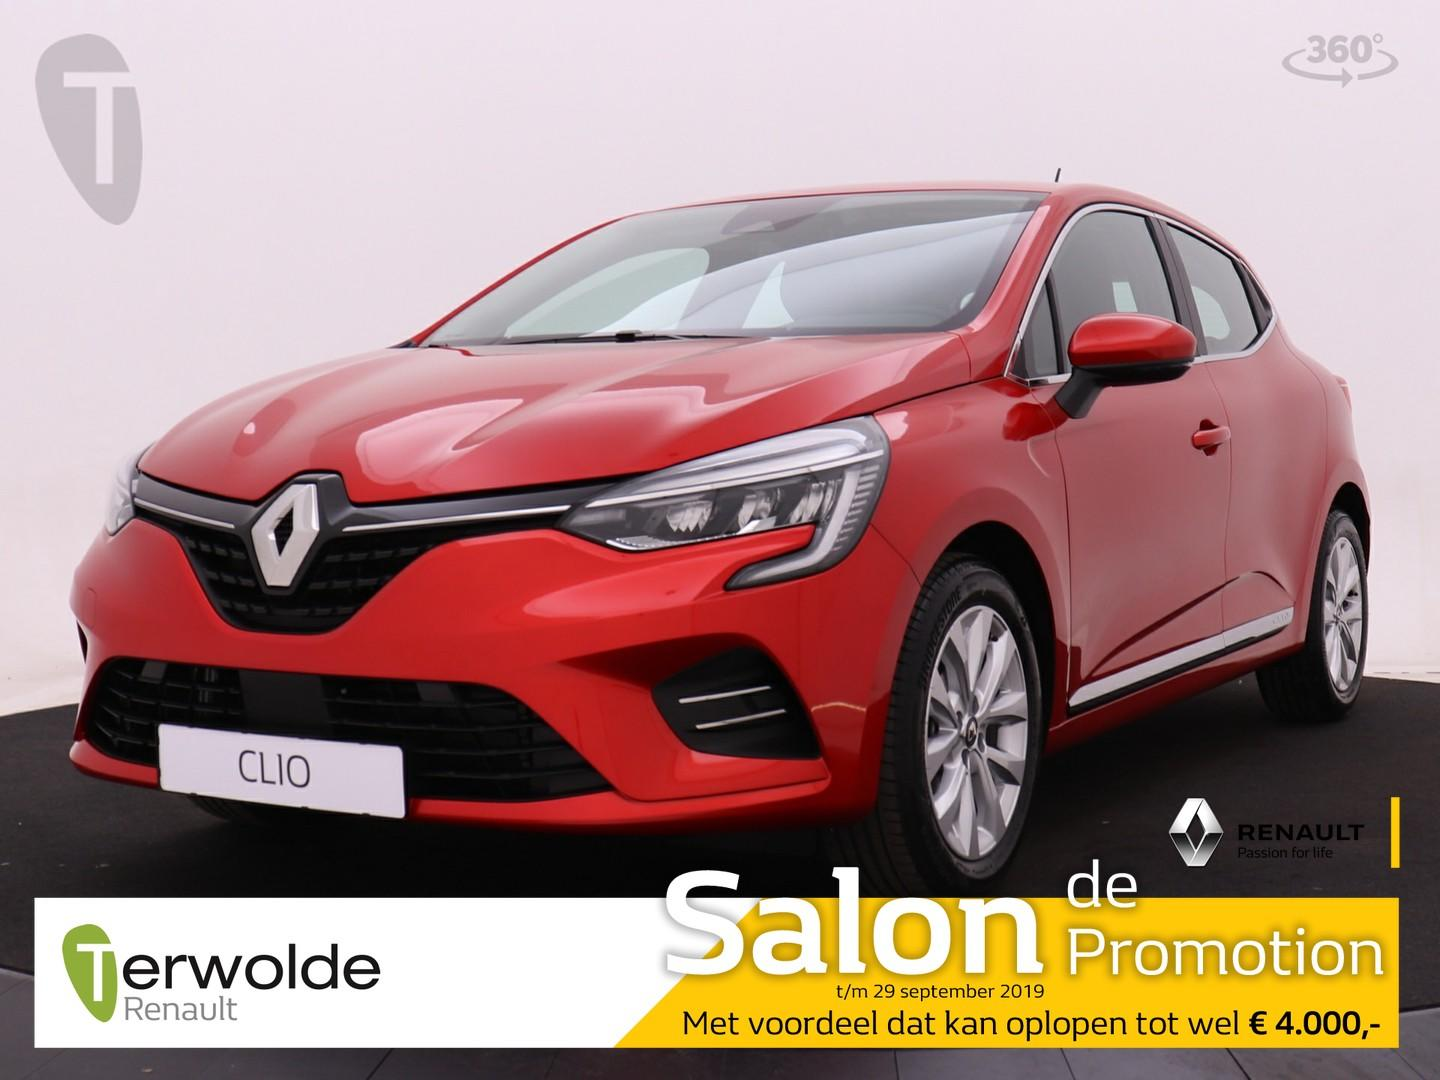 Renault Clio 1.0 tce intens 2019